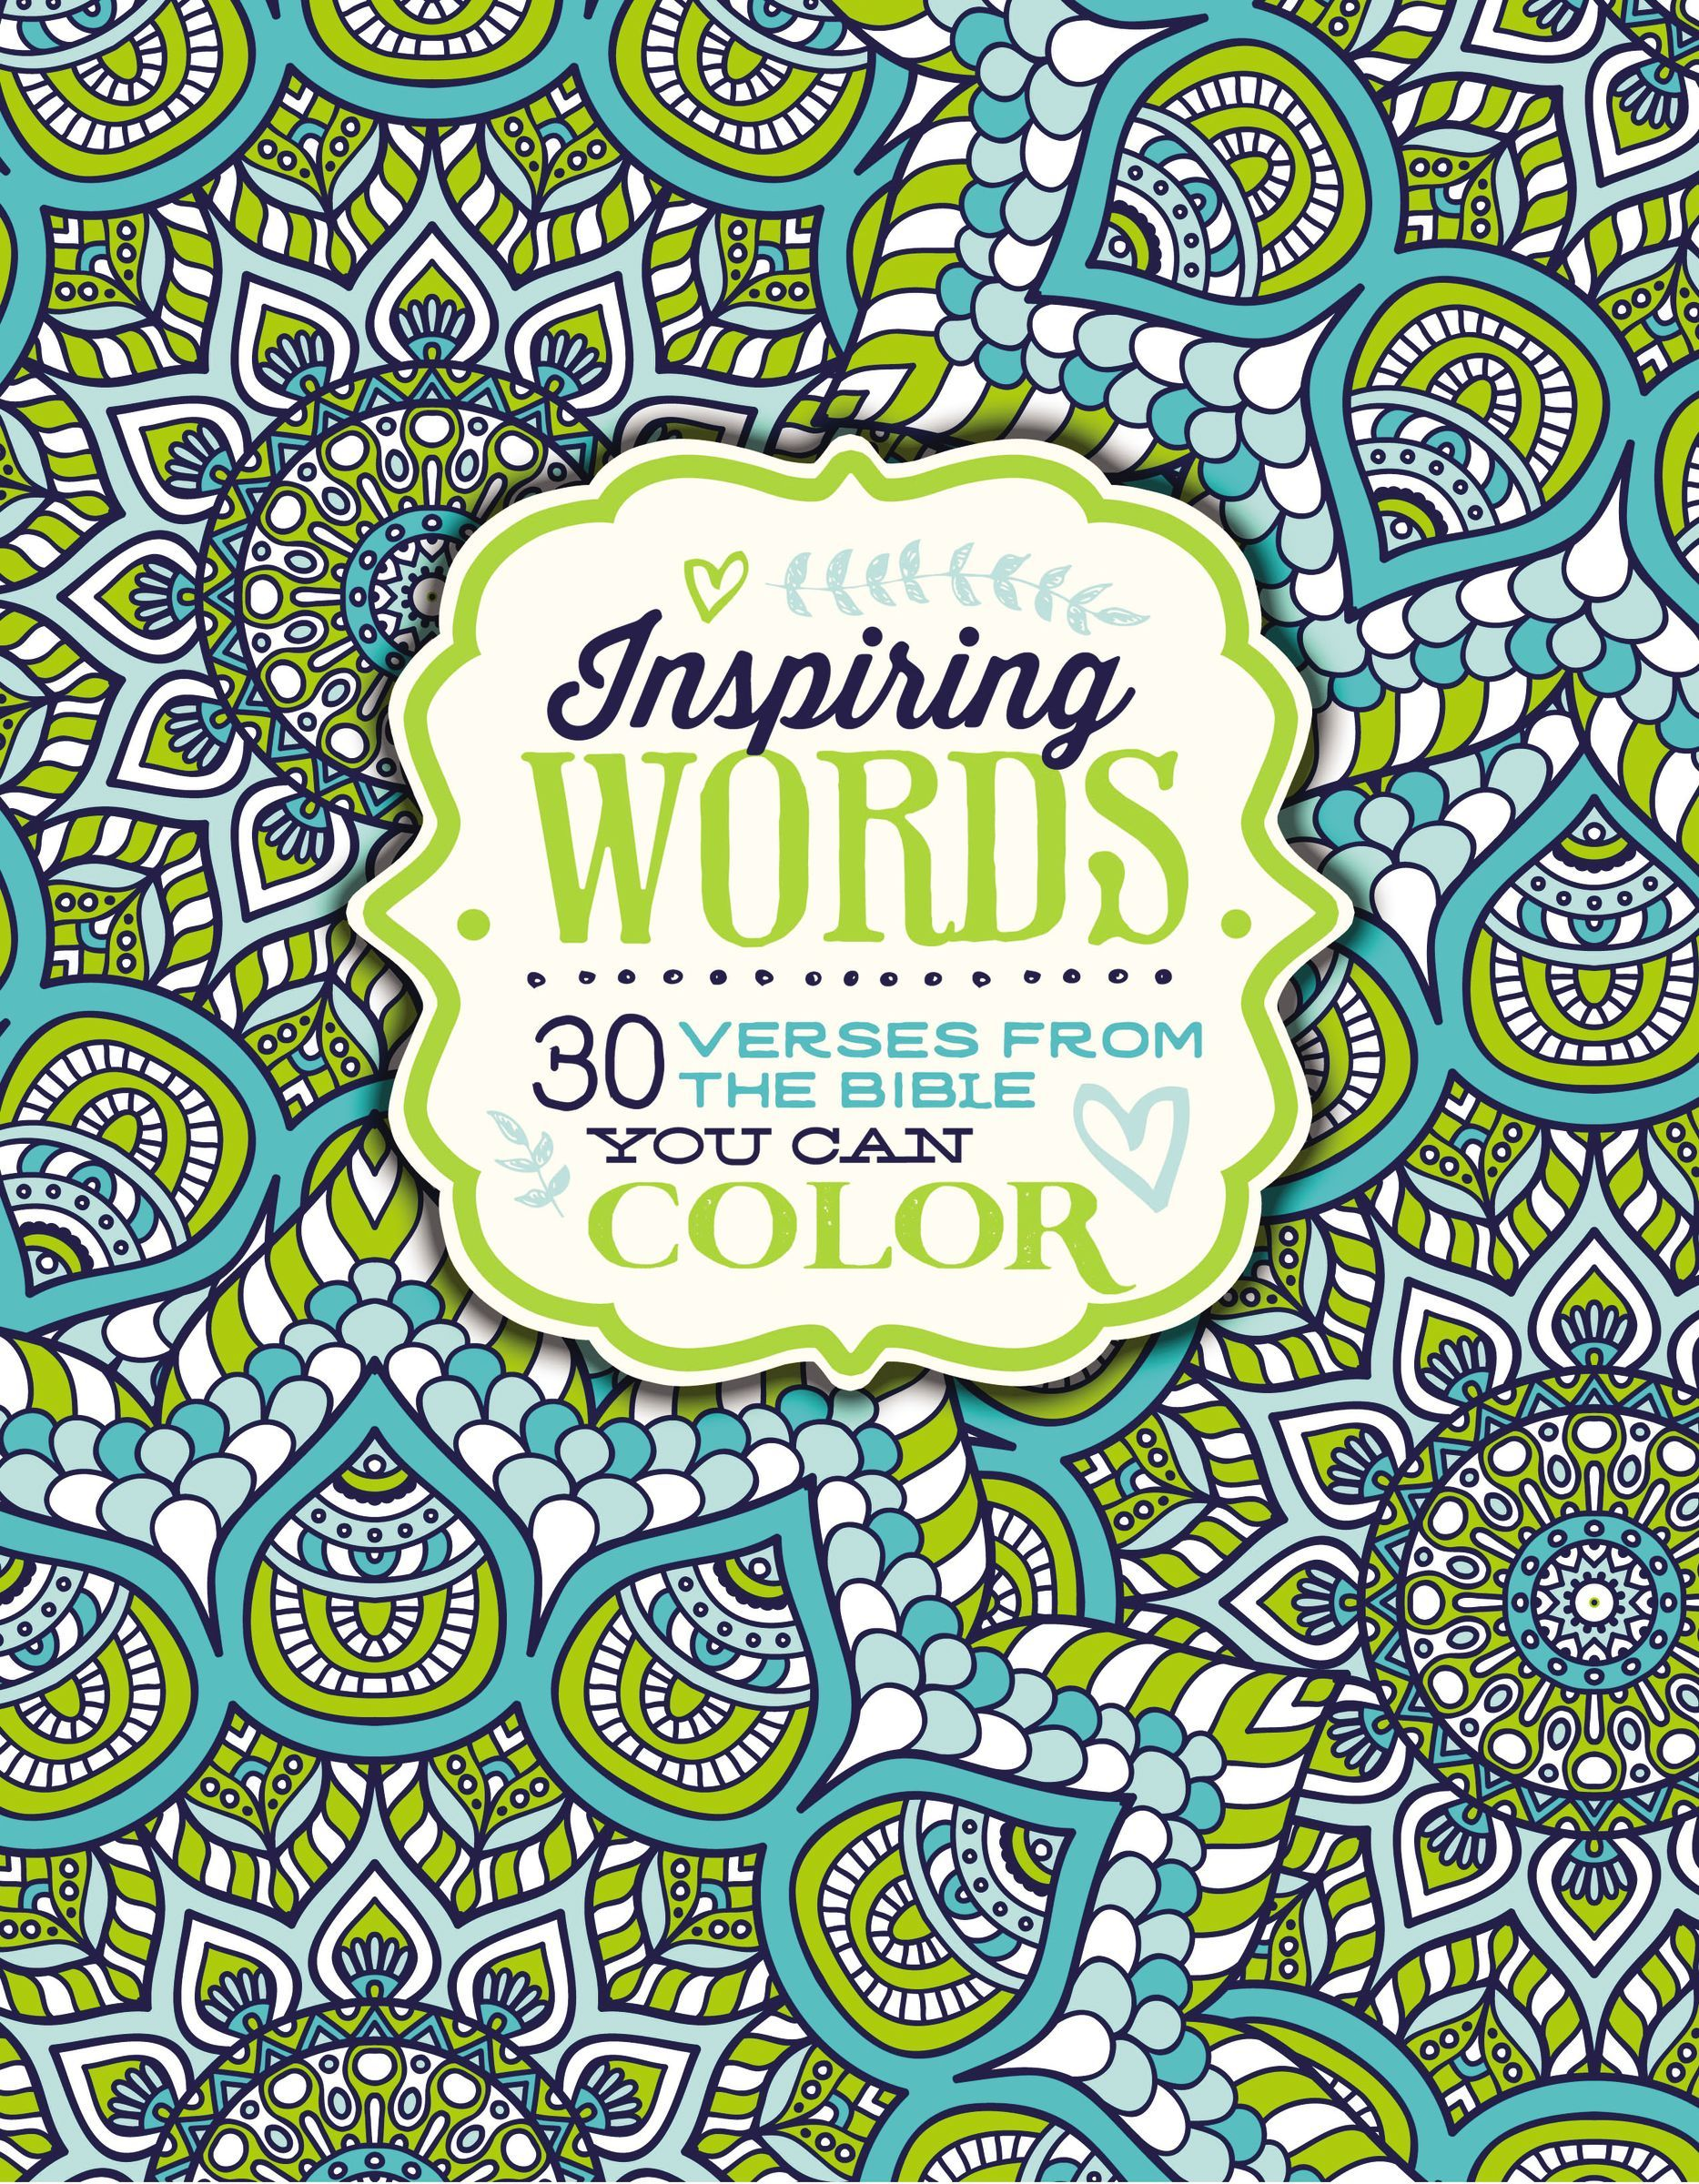 Inspiring Words: 30 Verses from the Bible You Can Color  by  Zondervan Publishing